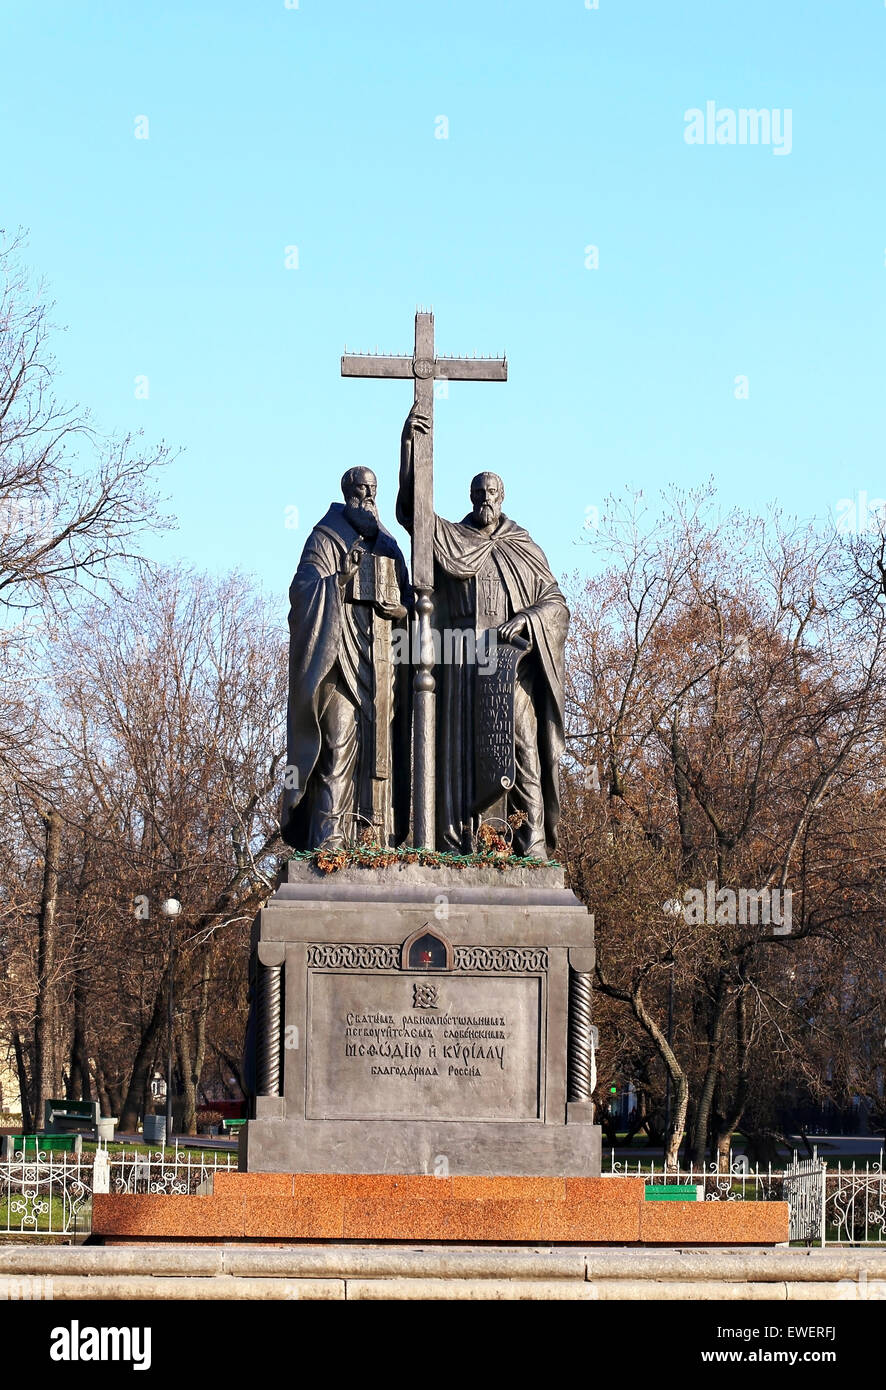 Cyril and Methodius are founders of slavic literature. The monument was erected in the center of Moscow - Stock Image